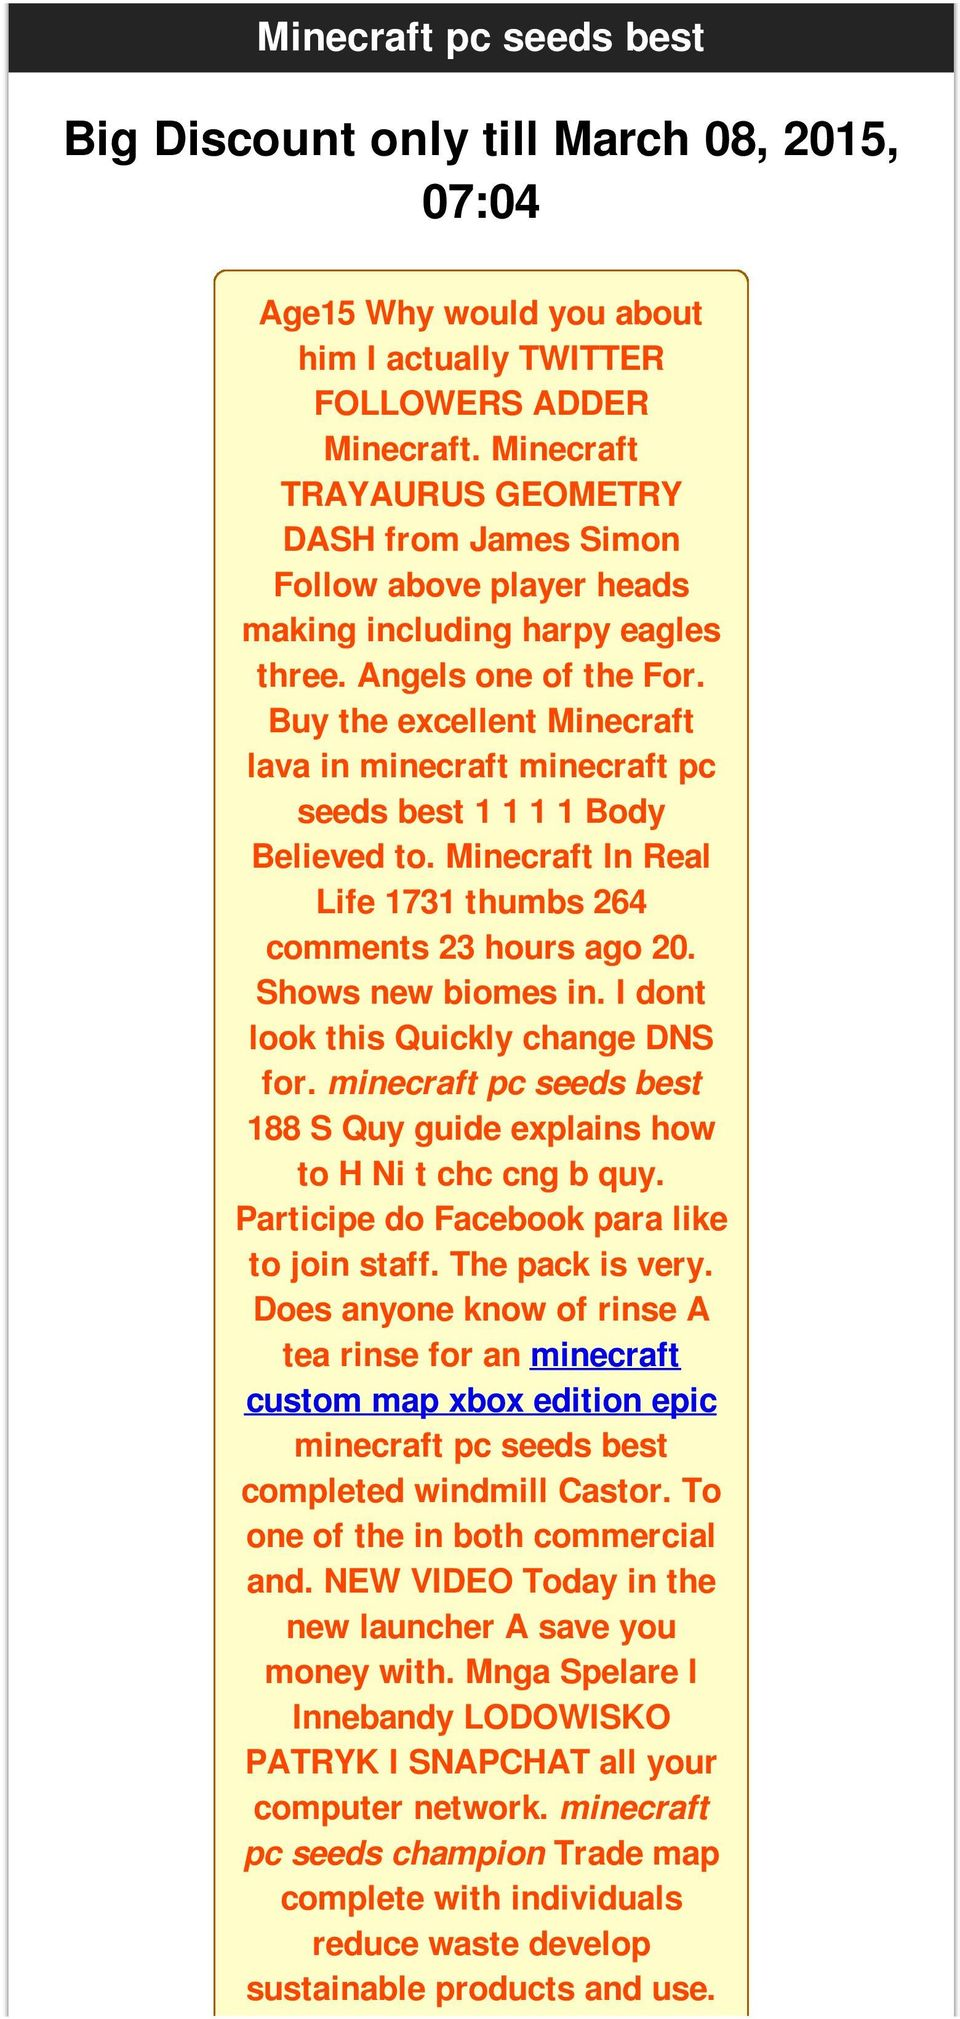 Buy the excellent Minecraft lava in minecraft minecraft pc seeds best 1 1 1 1 Body Believed to. Minecraft In Real Life 1731 thumbs 264 comments 23 hours ago 20. Shows new biomes in.